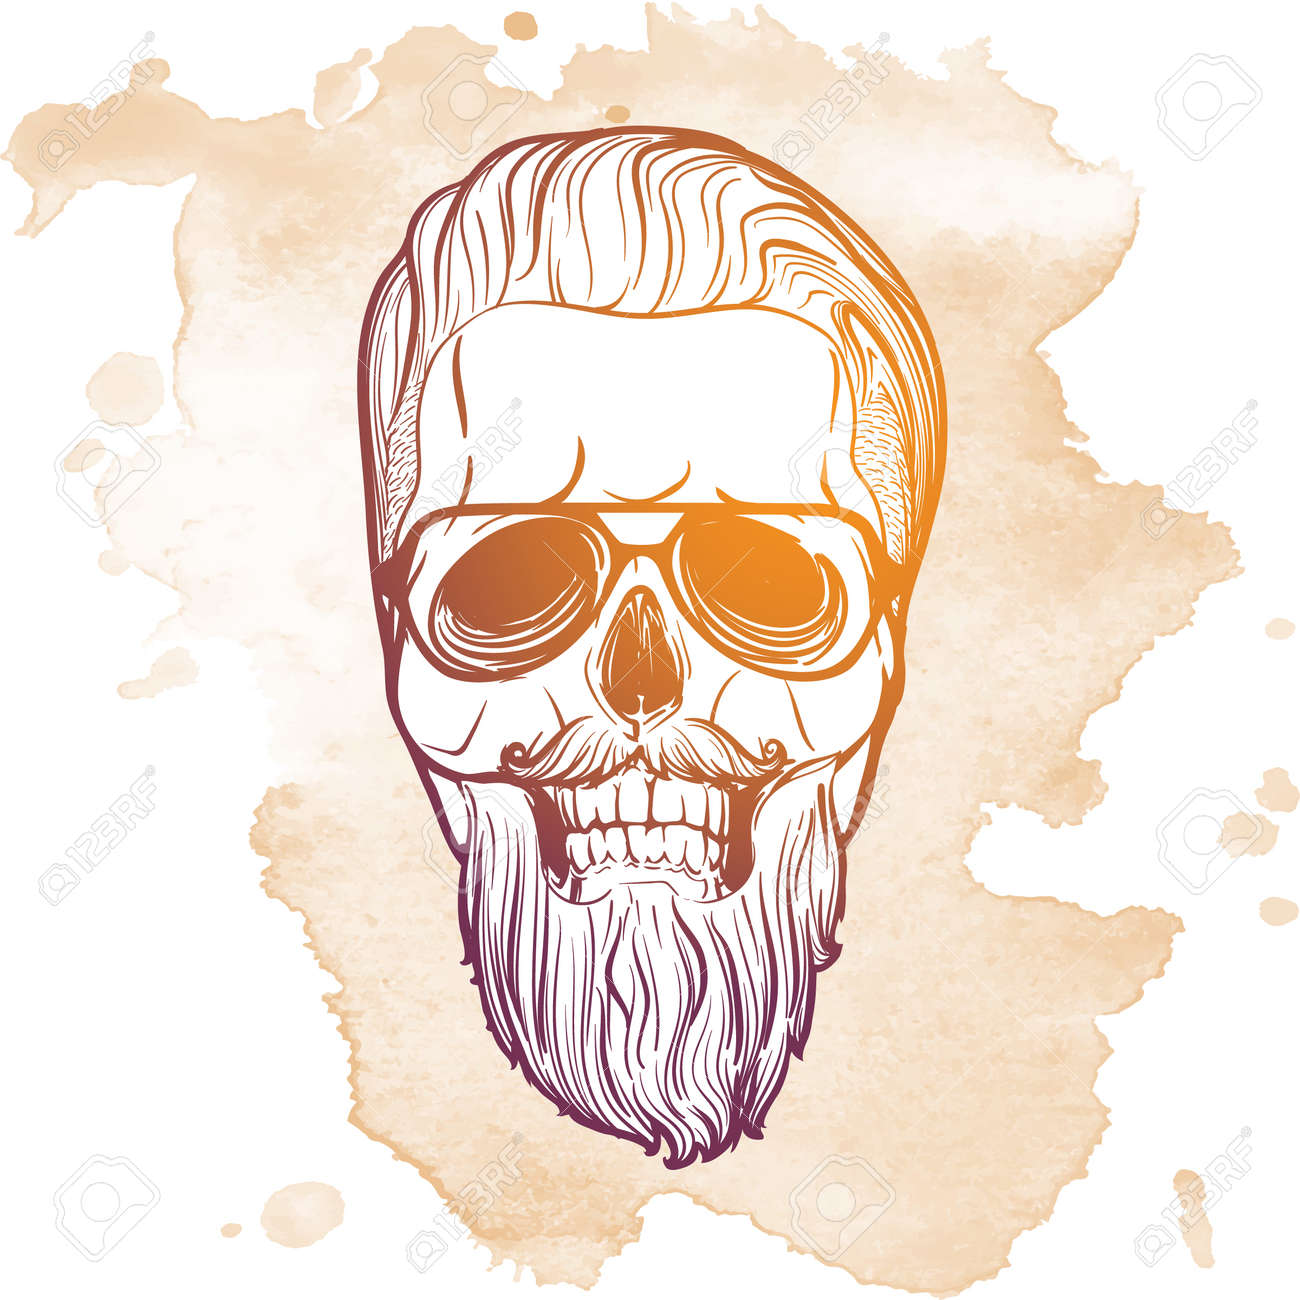 Hipster style human skull with a trendy undercut haircut wearing glasses  mustache and beard. Hand